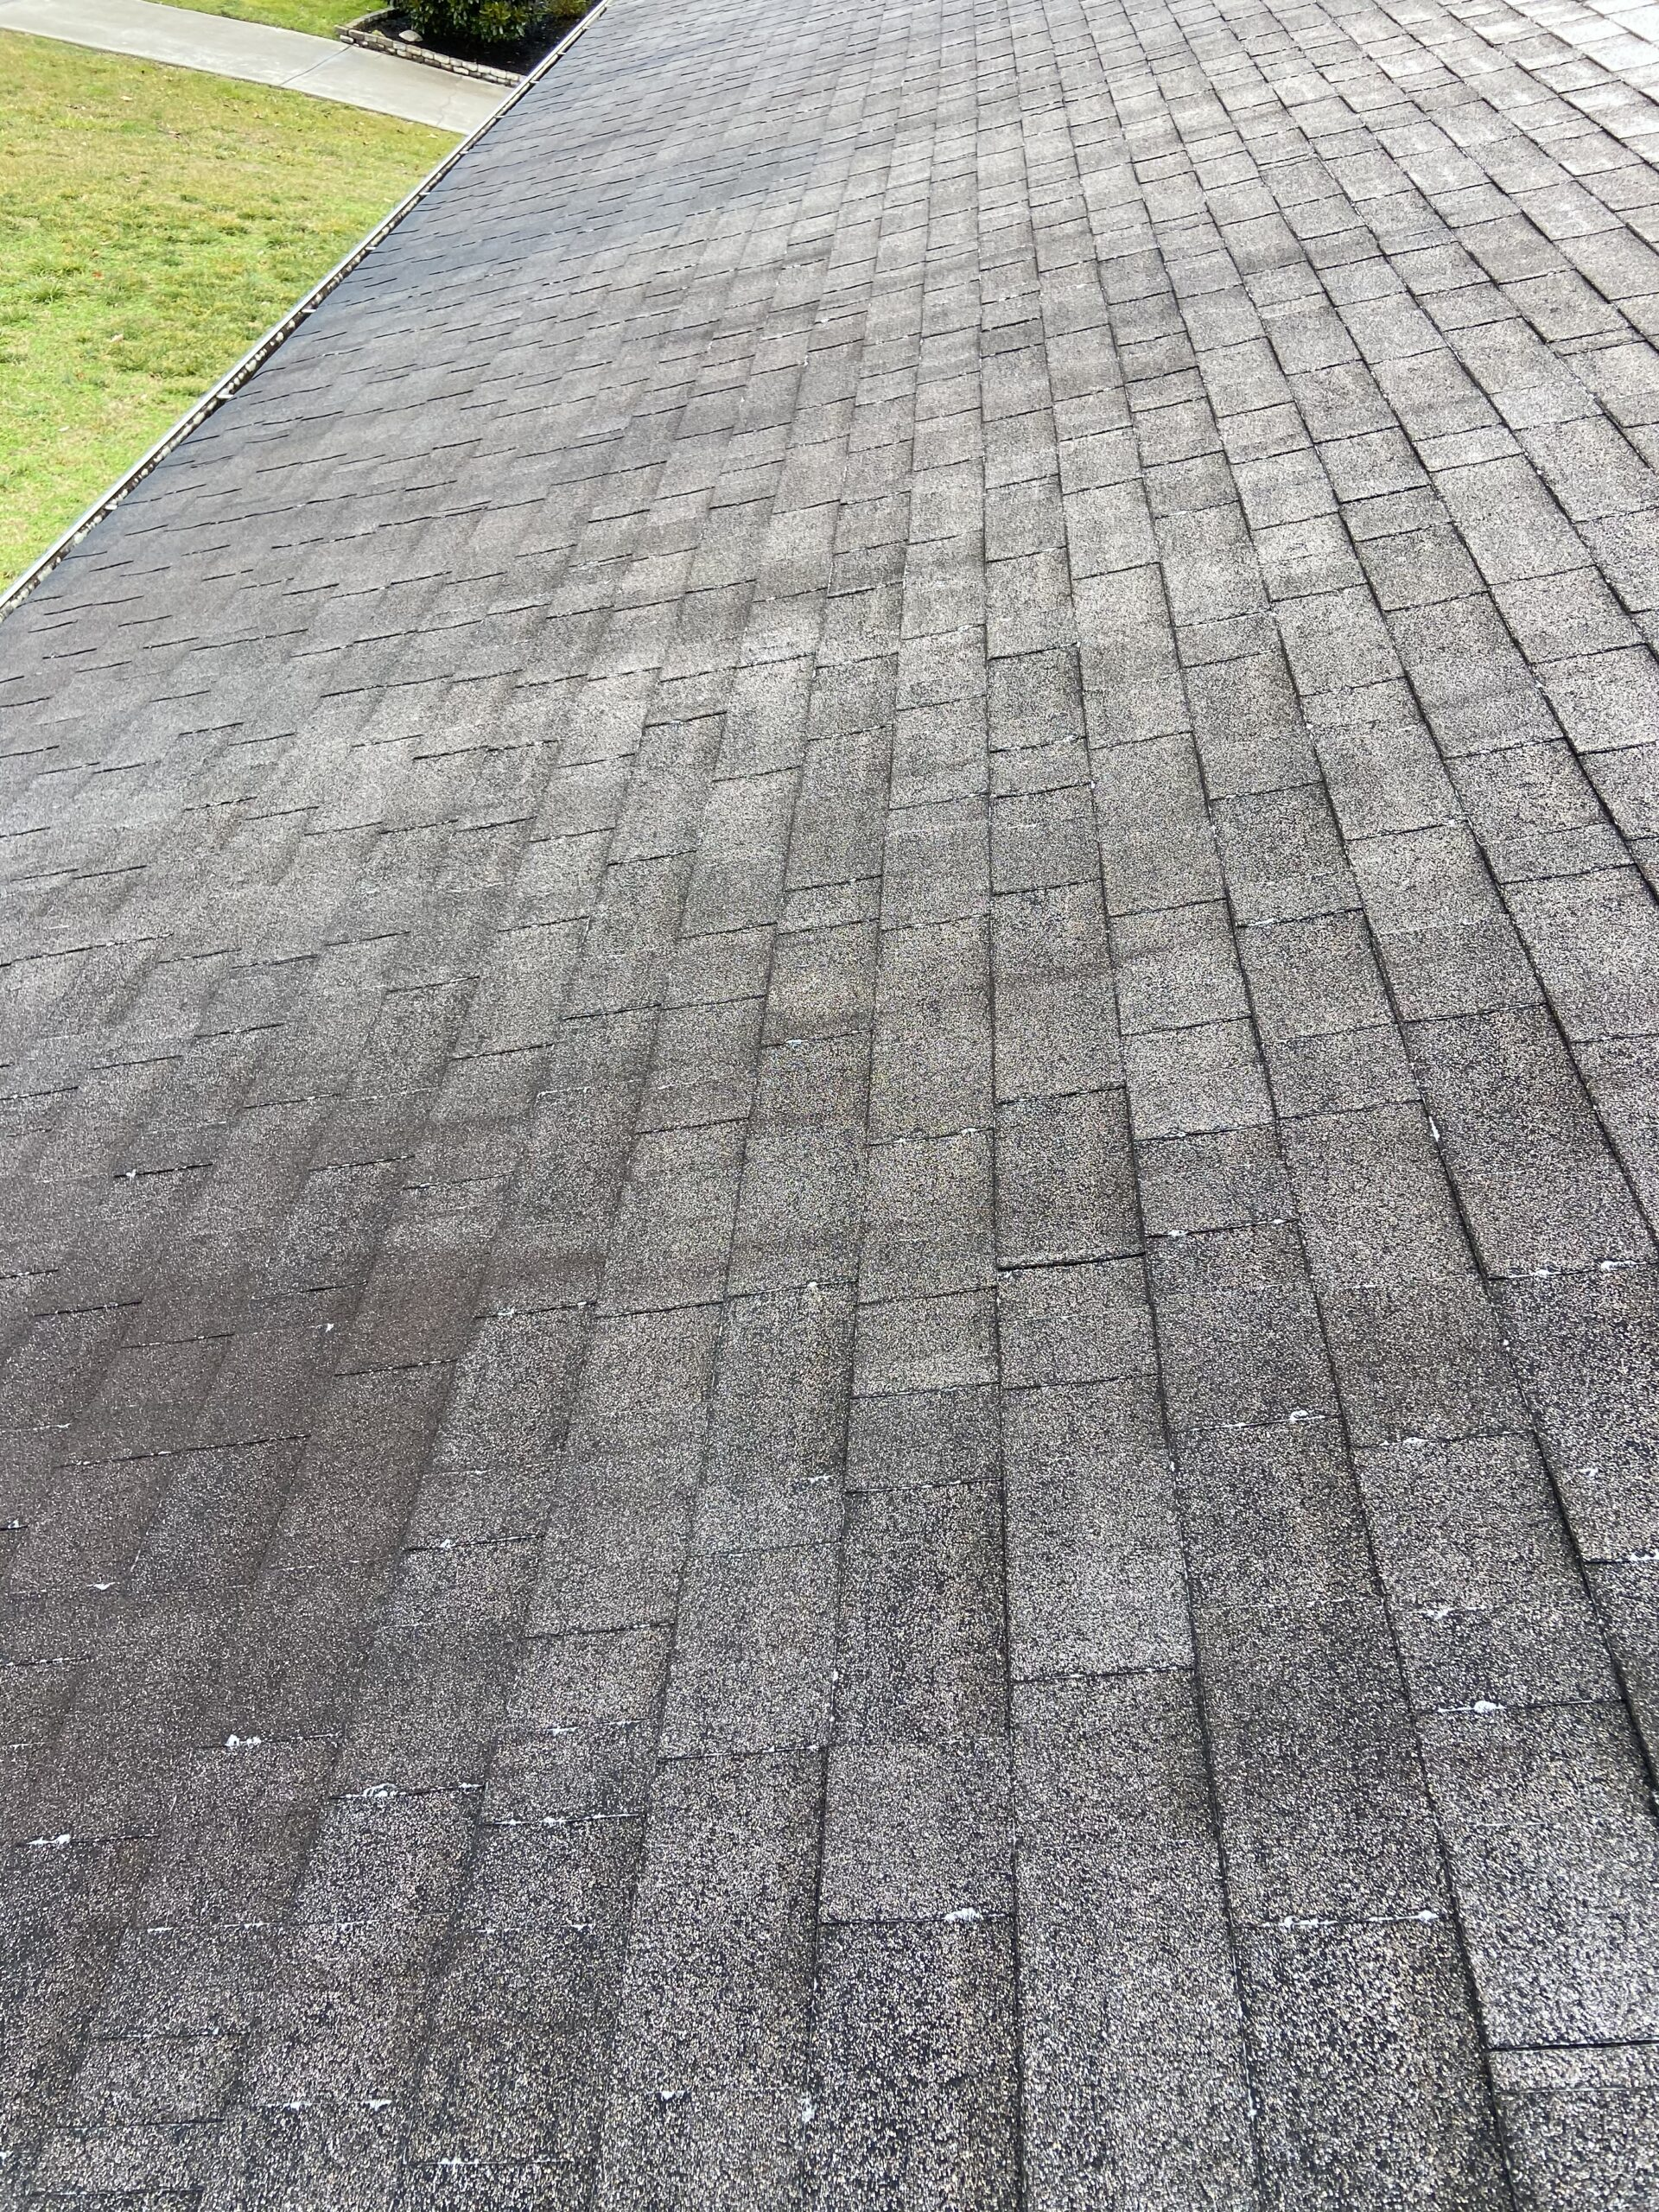 This is a 23-year-old shingle roof that has hail damage in Dandridge Tennessee